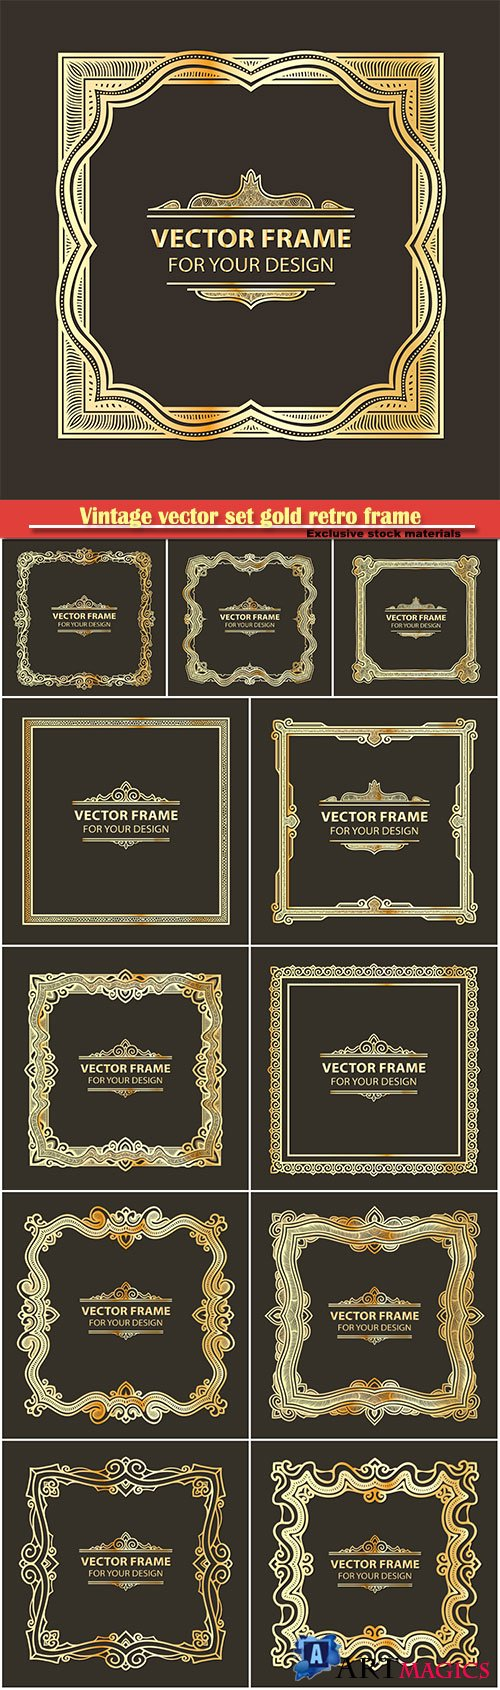 Vintage vector set gold retro frame